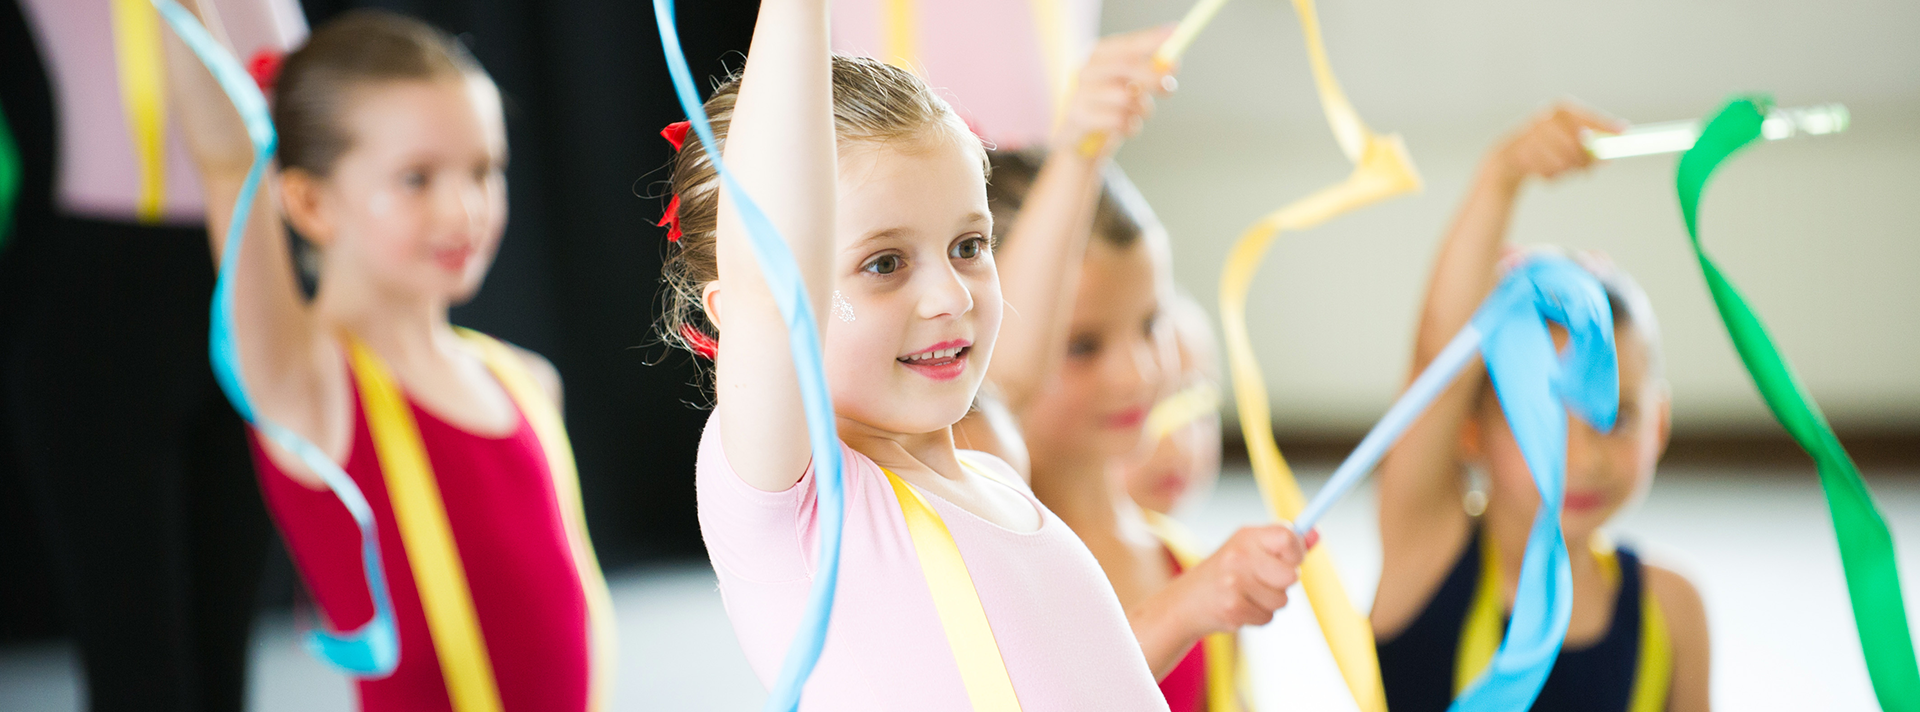 Children Develop their Skills, Self-Expression and Natural Abilities